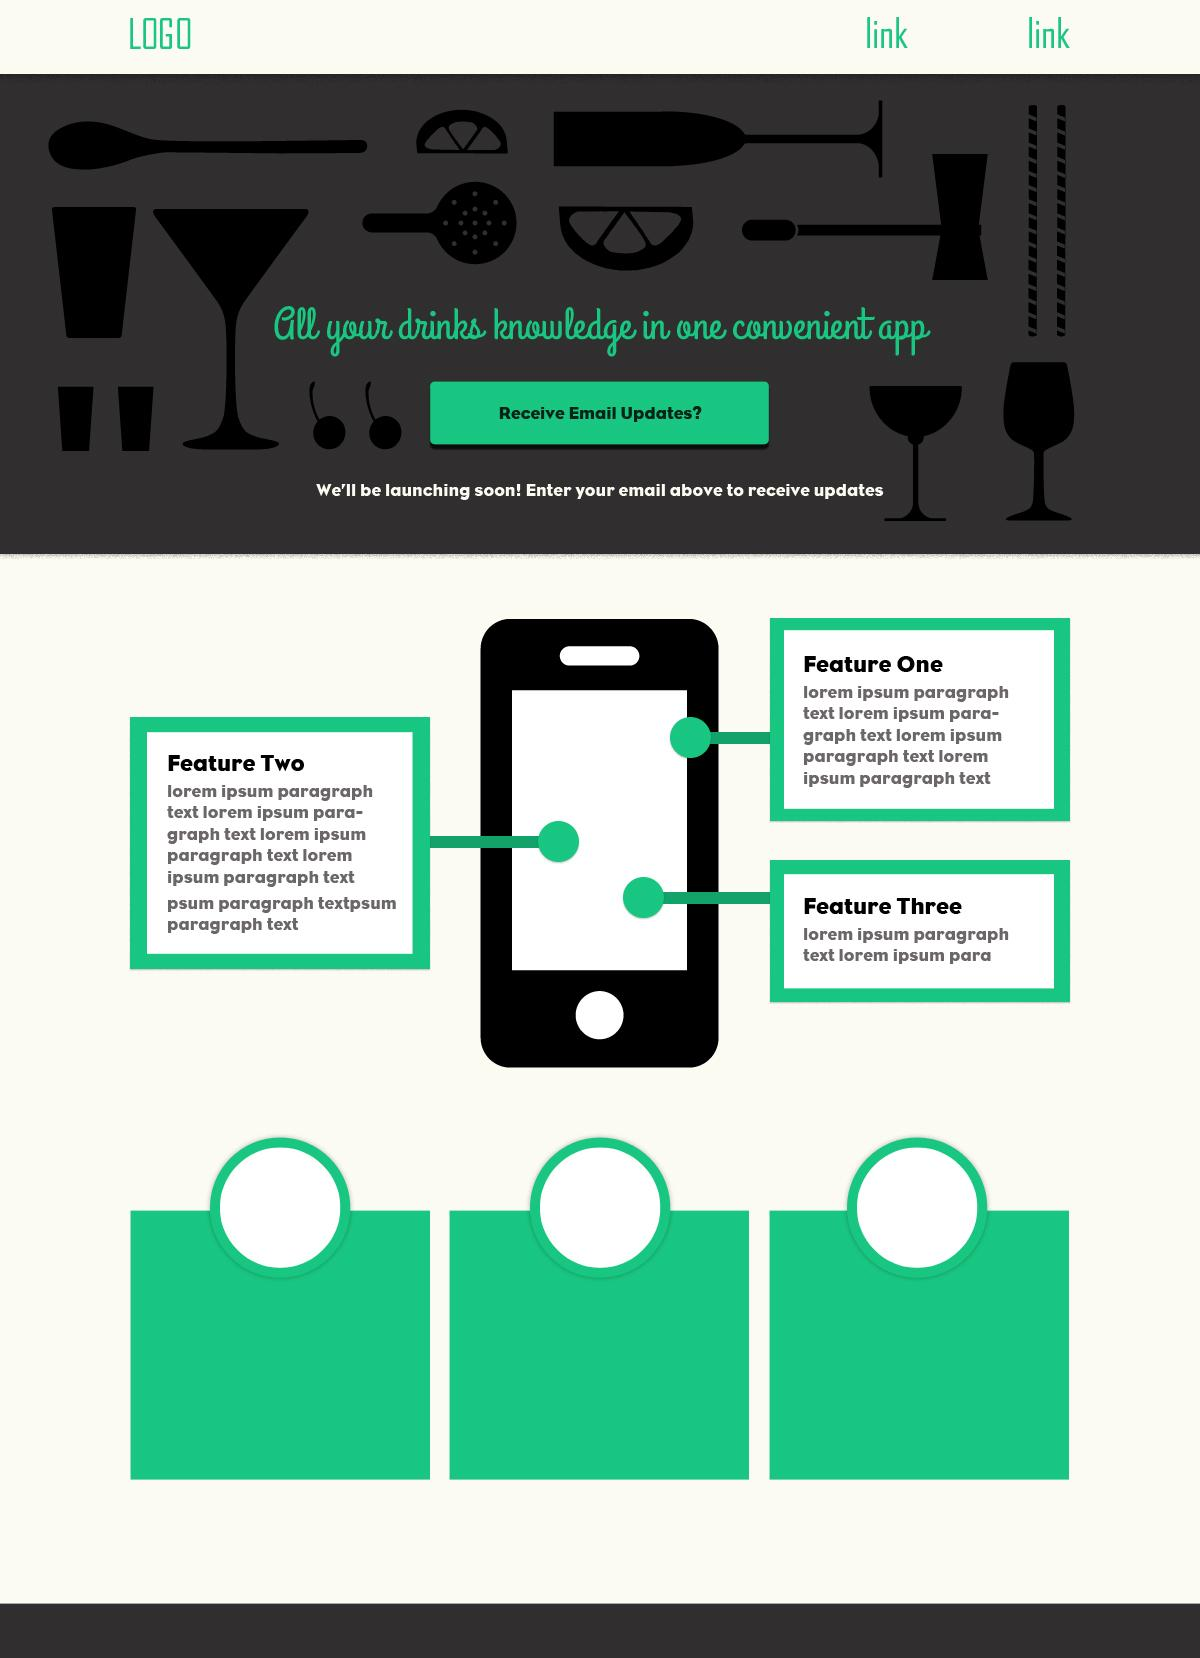 Some Alcohol-Focused Mobile App - image 1 - student project